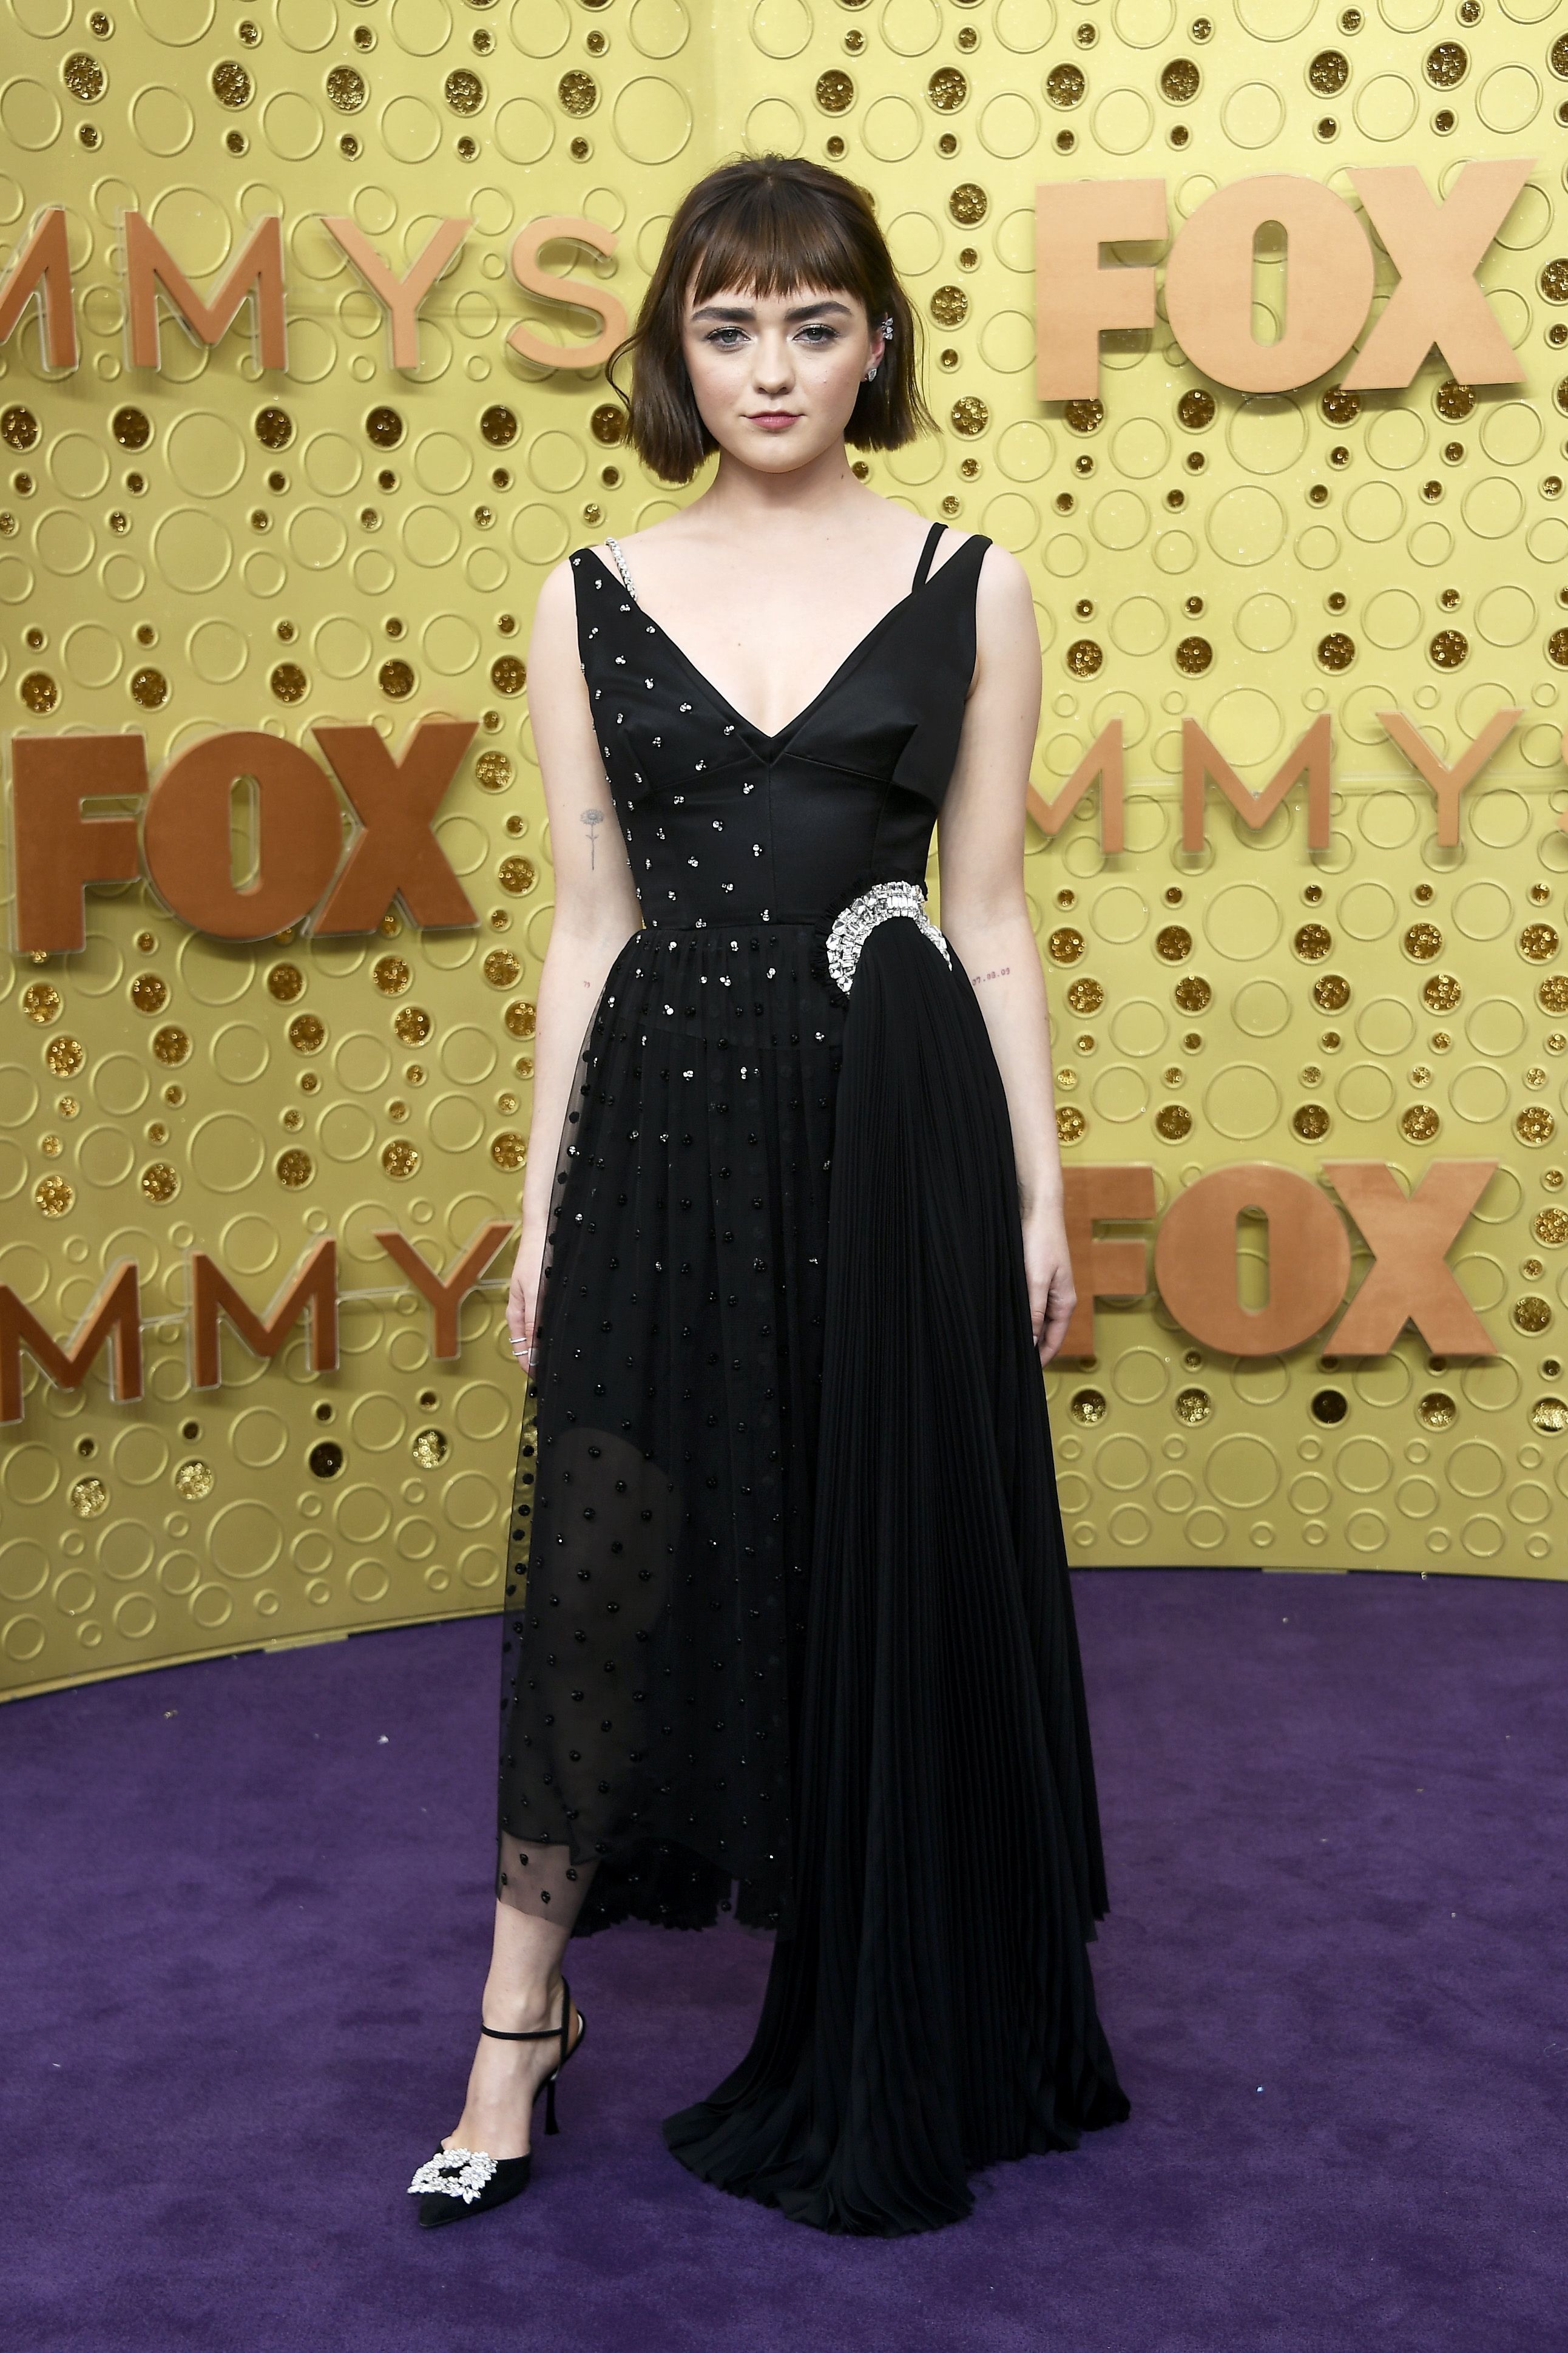 Maisie Williams Dyed and Cut Her Hair For the Emmys Red Carpet